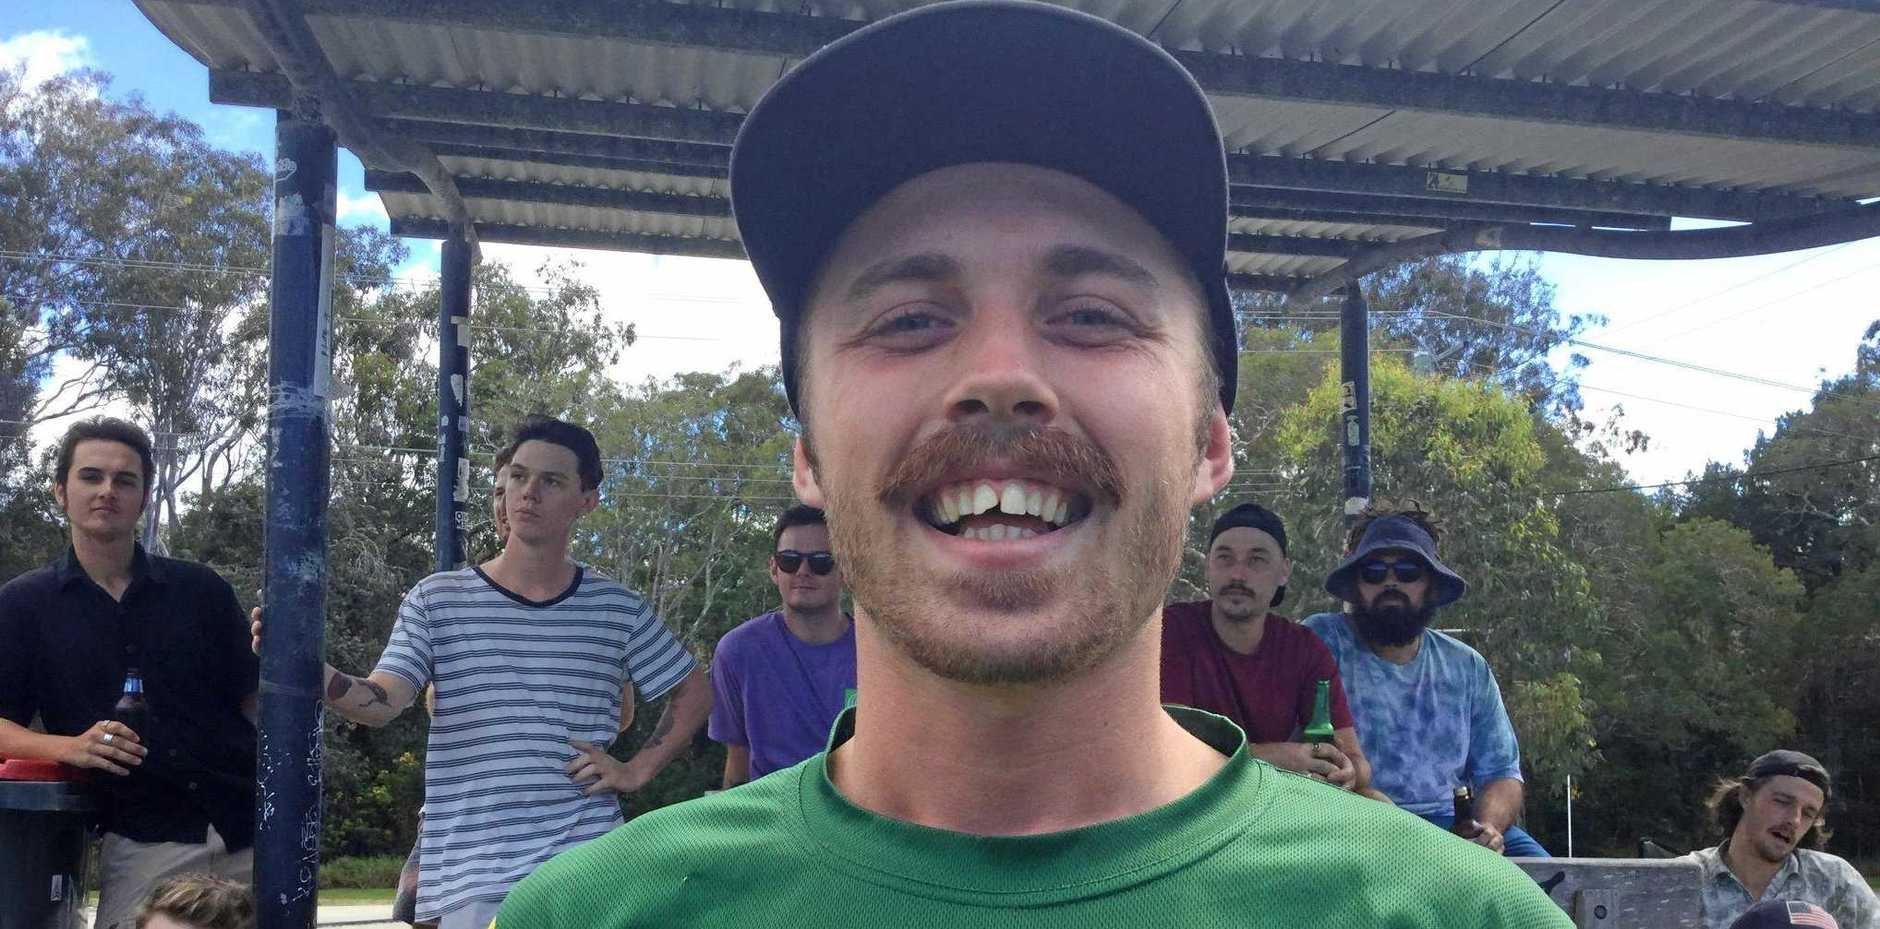 Tim Watkins was killed in a hit and run incident on Wilsons Creek Road, Wilsons Creek, about 9km south-west of Mullumbimby.